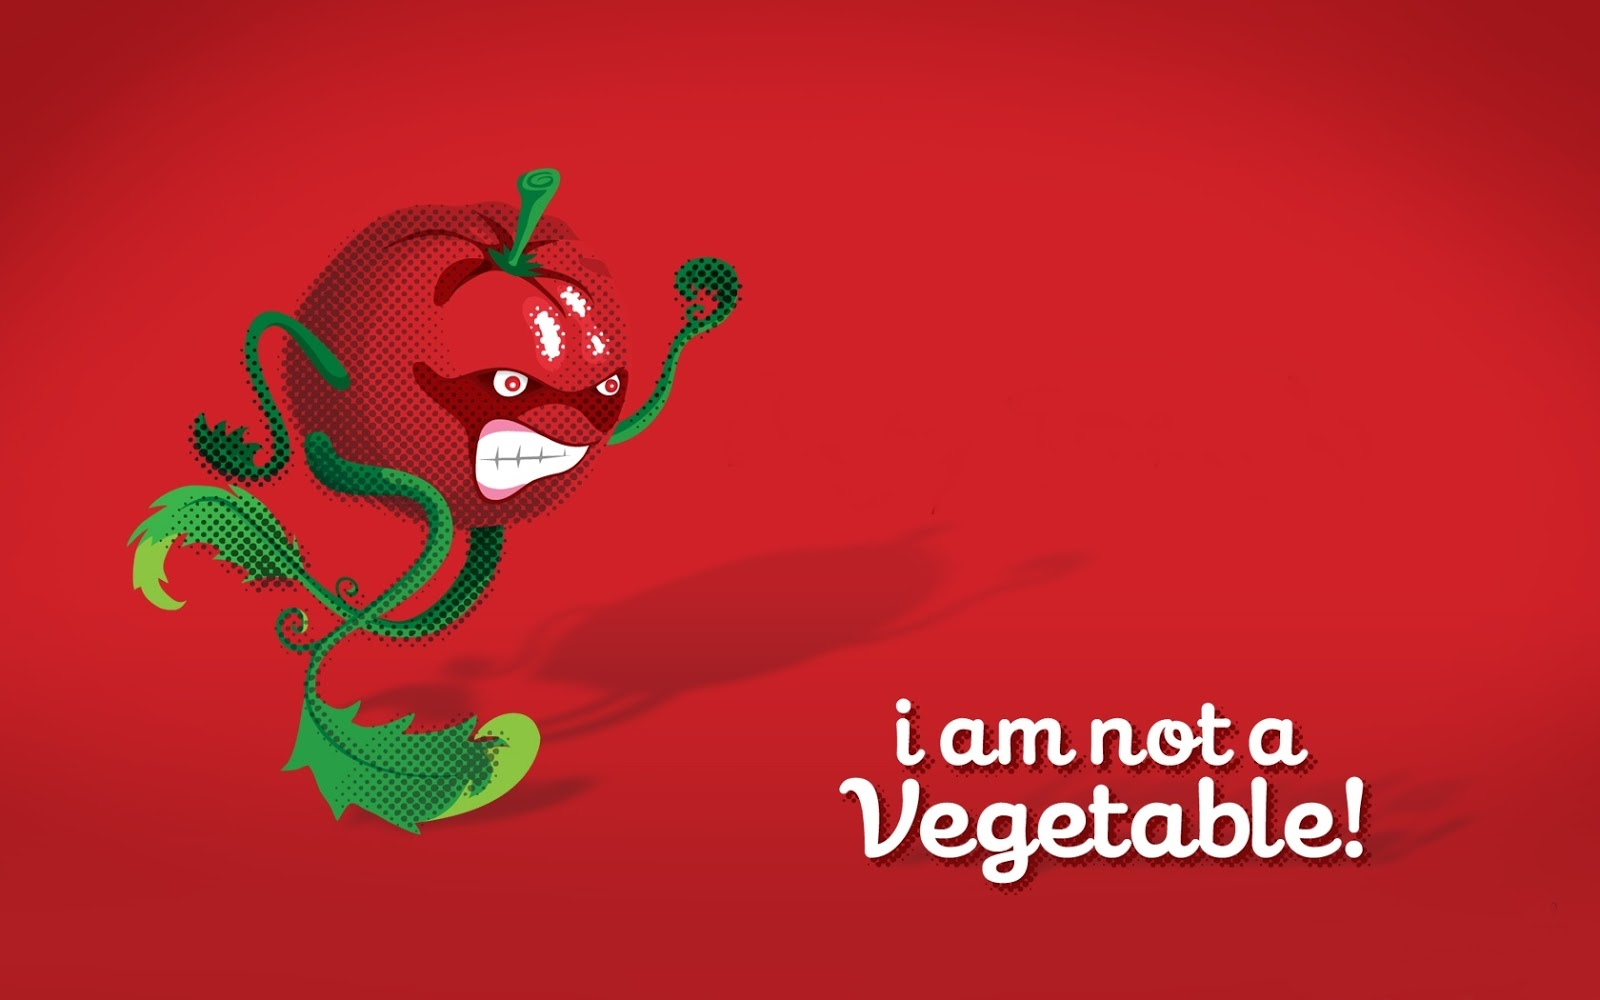 Tomato: is it a vegetable or fruit 26